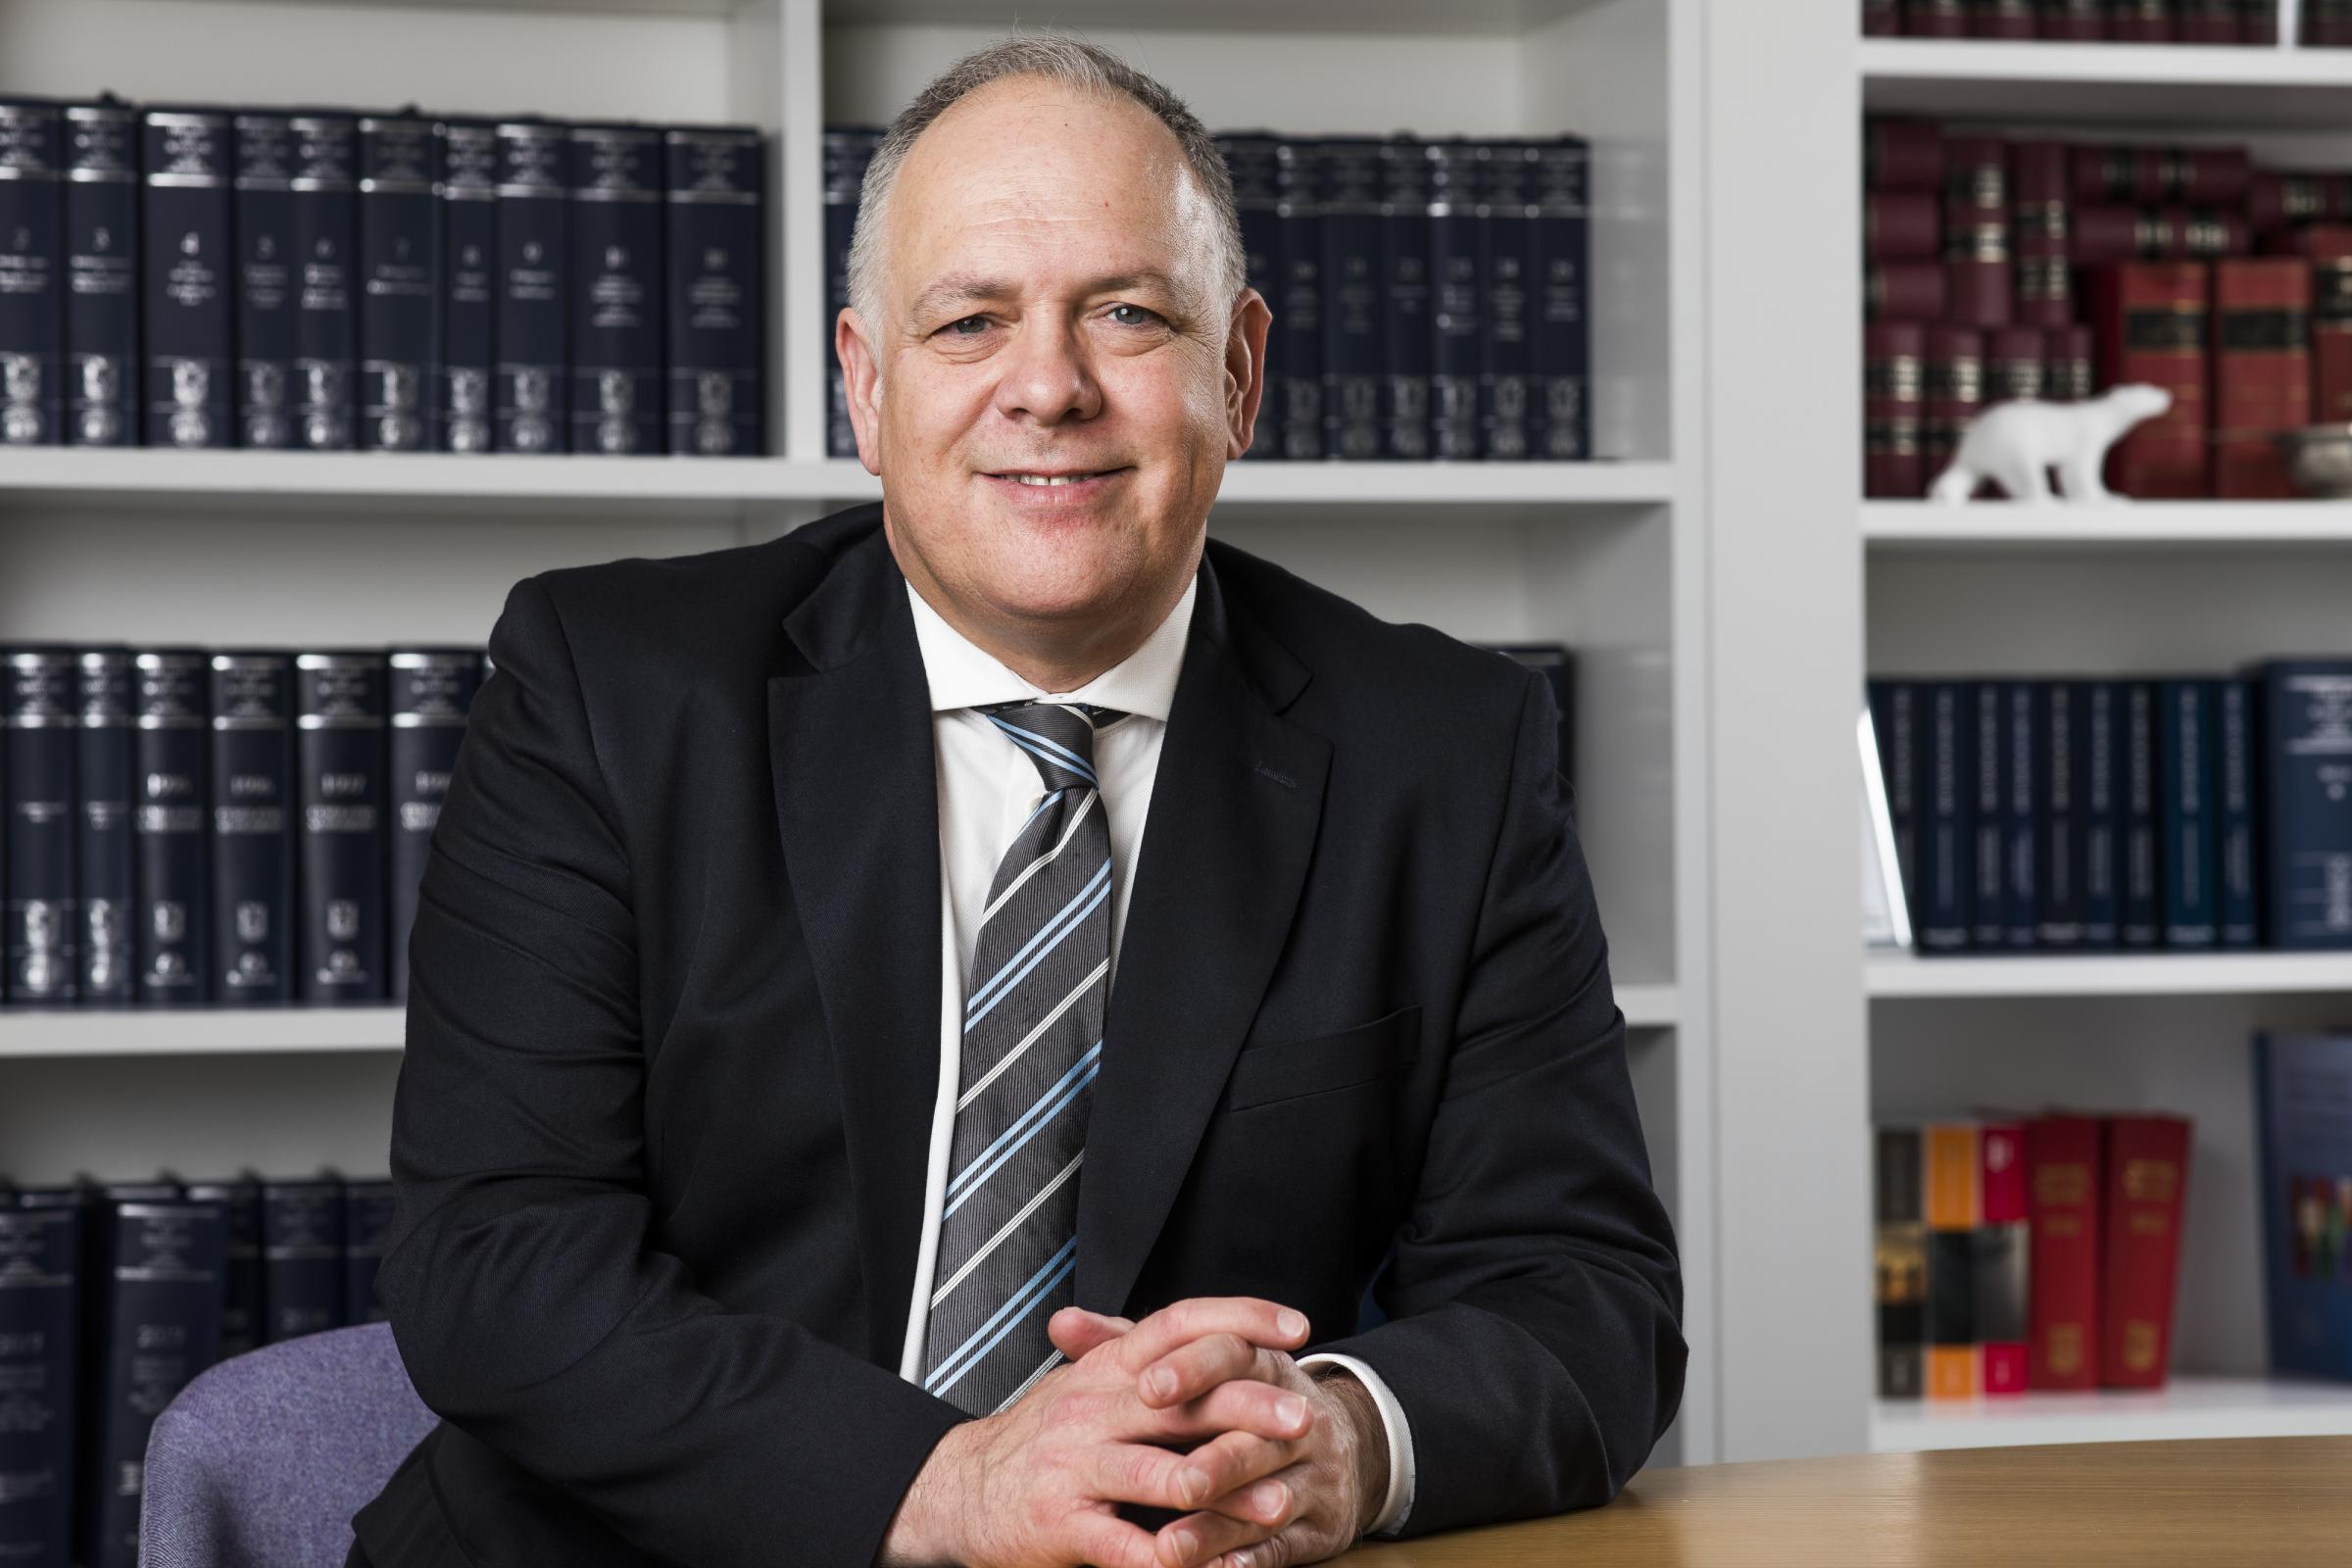 Legal aid review tops the agenda for latest Law Society president